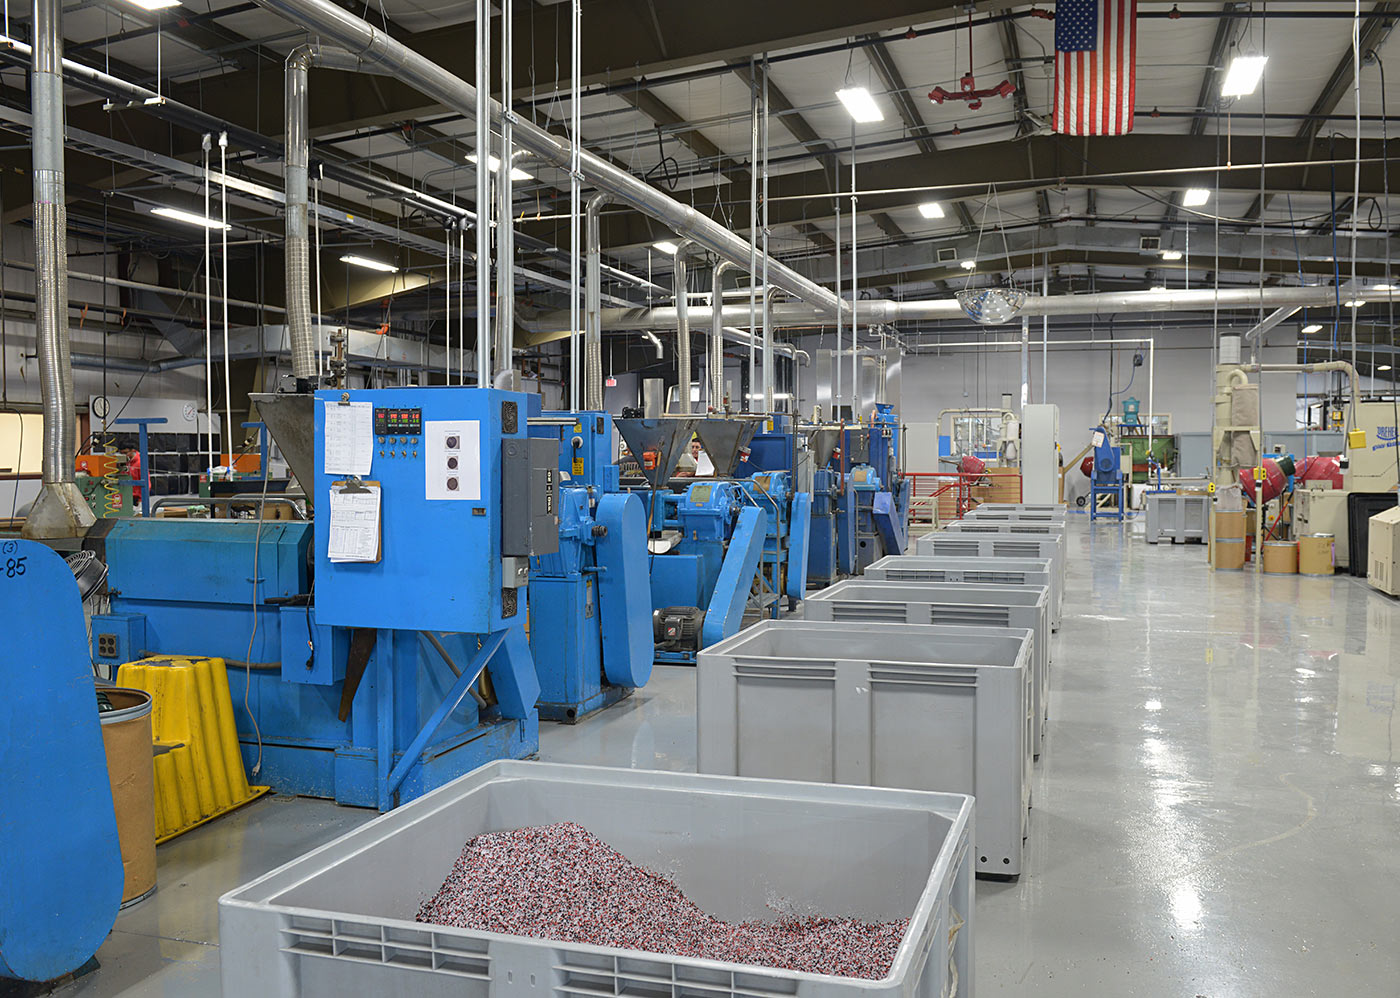 Production Floor With Large Bins